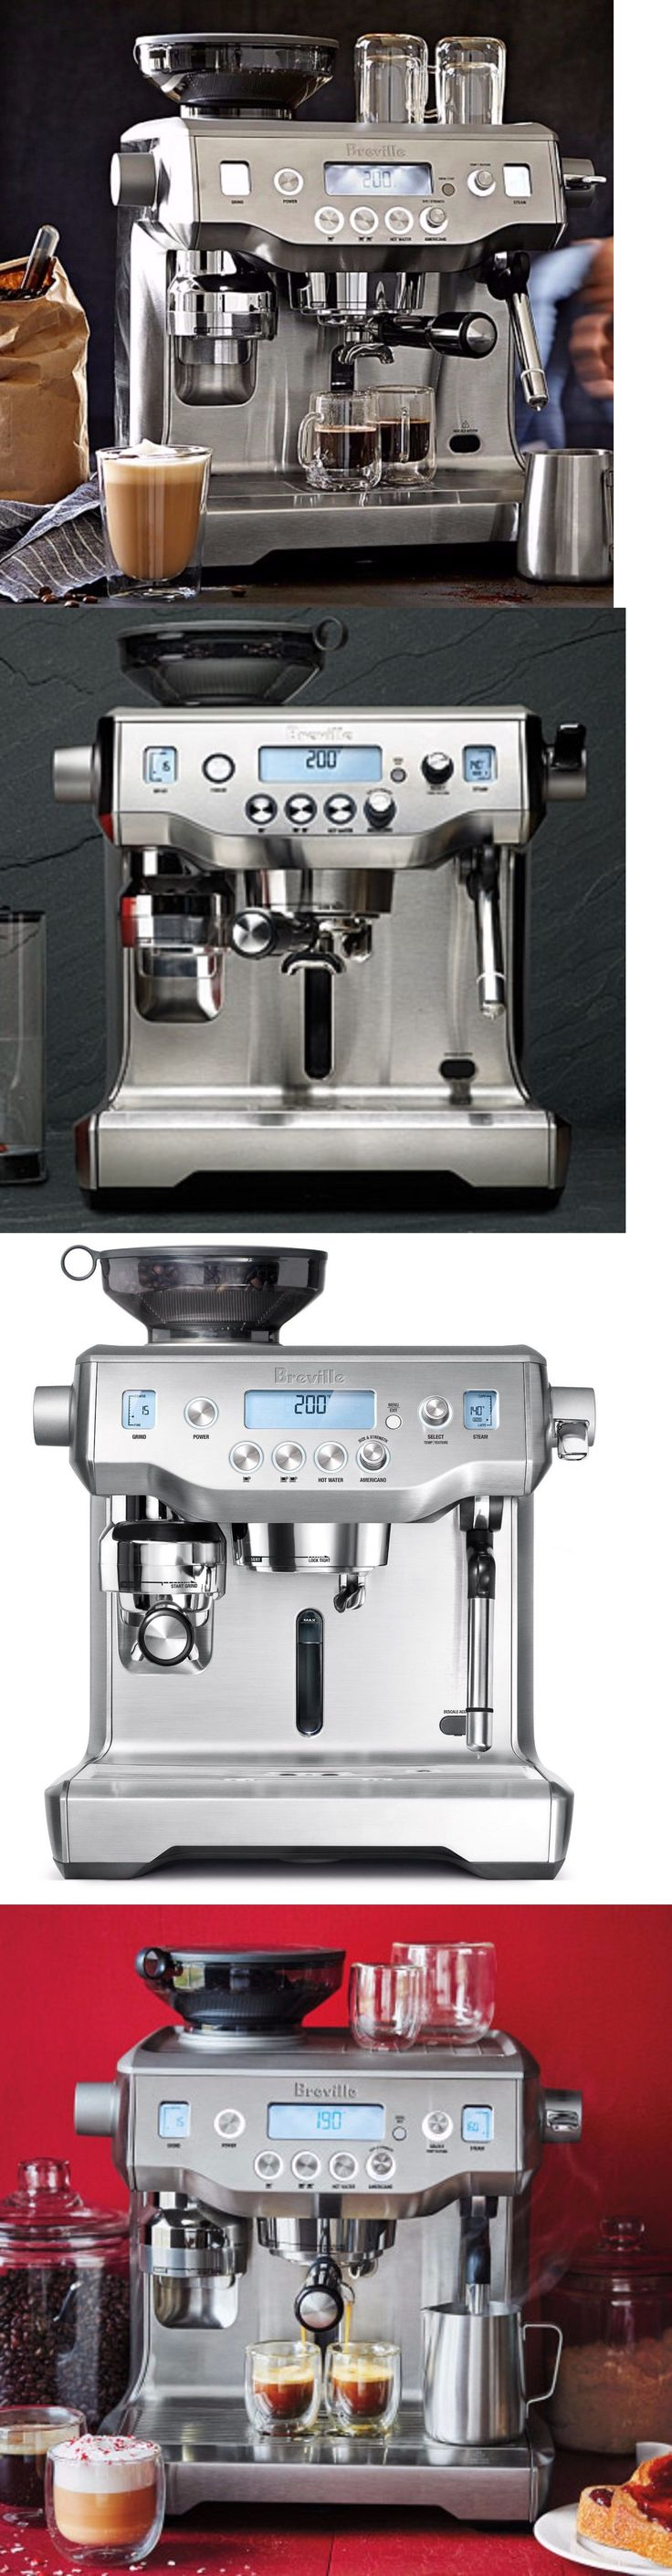 Small Kitchen Appliances: Stainless Espresso Machine Coffee Maker Grinder Dual Boiler Barista 15 Bar Pro BUY IT NOW ONLY: $2594.1